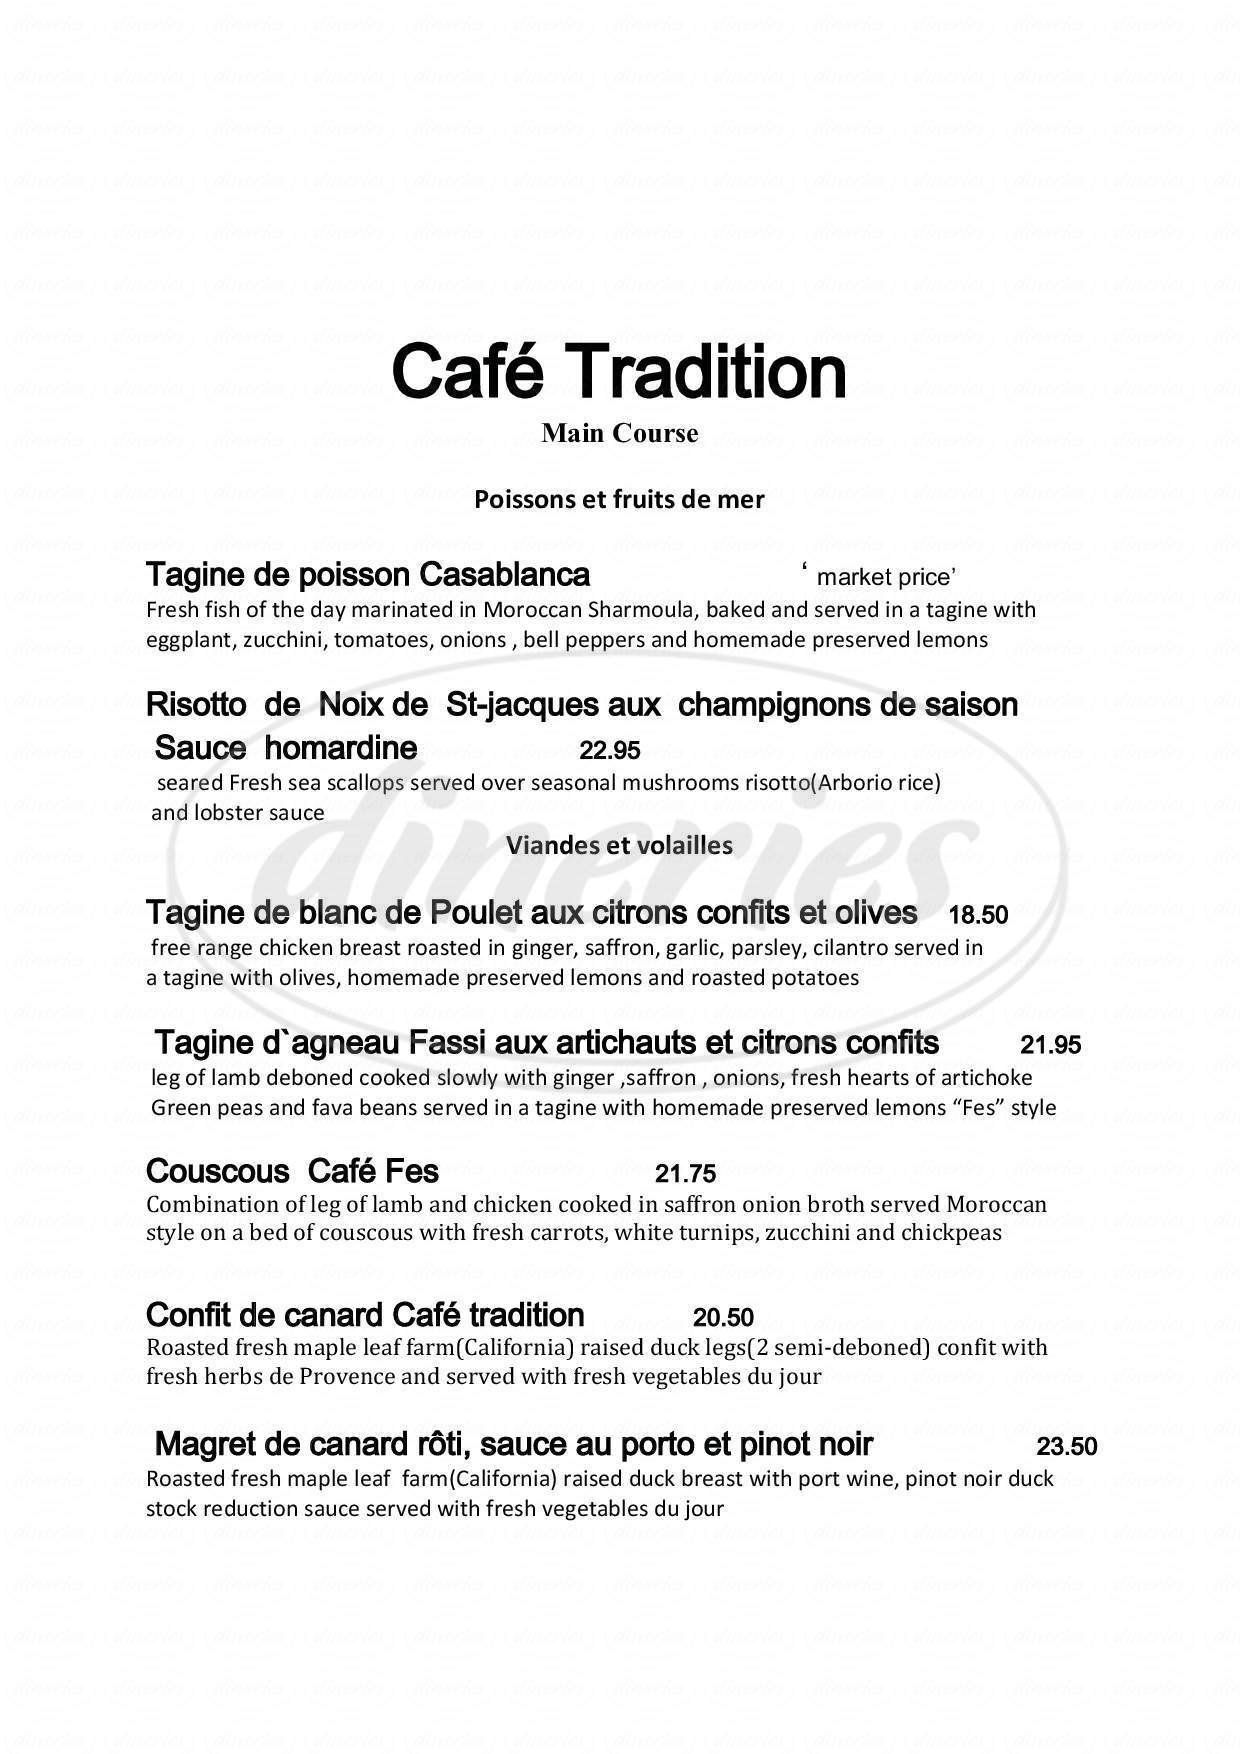 menu for Café Tradition